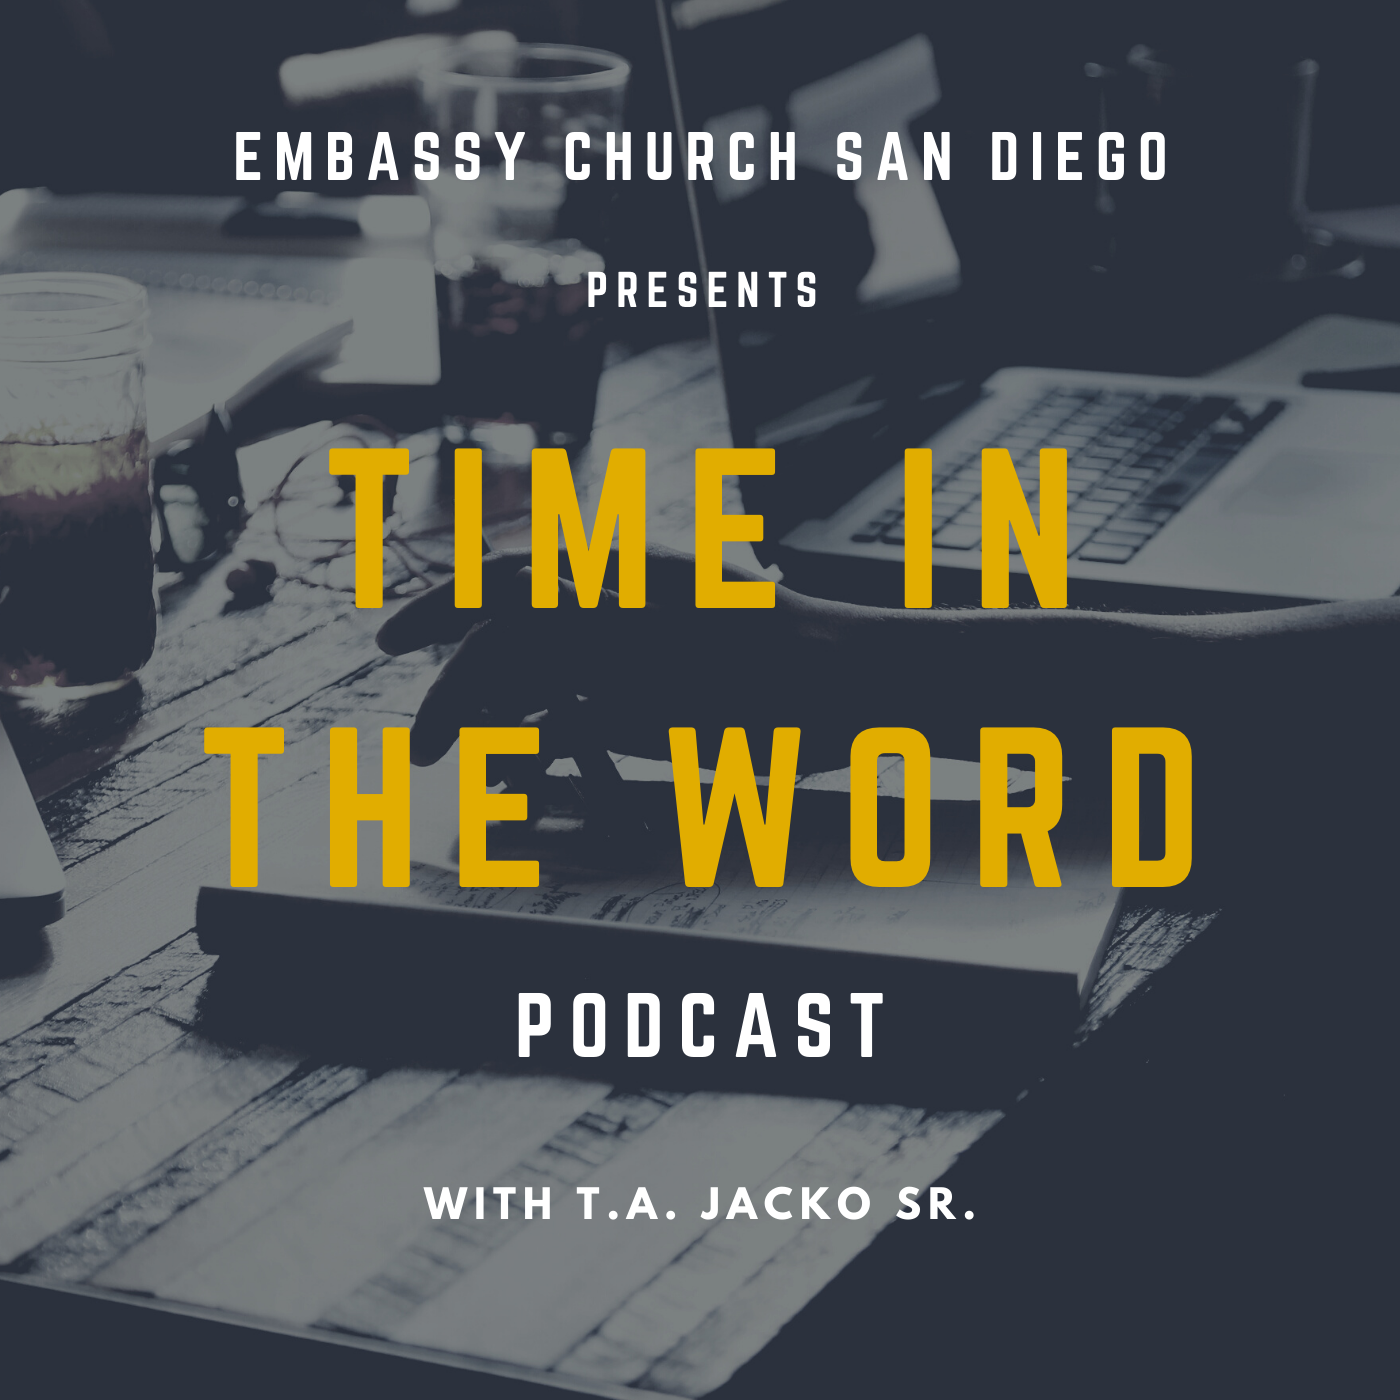 Embassy Church Experience San Diego